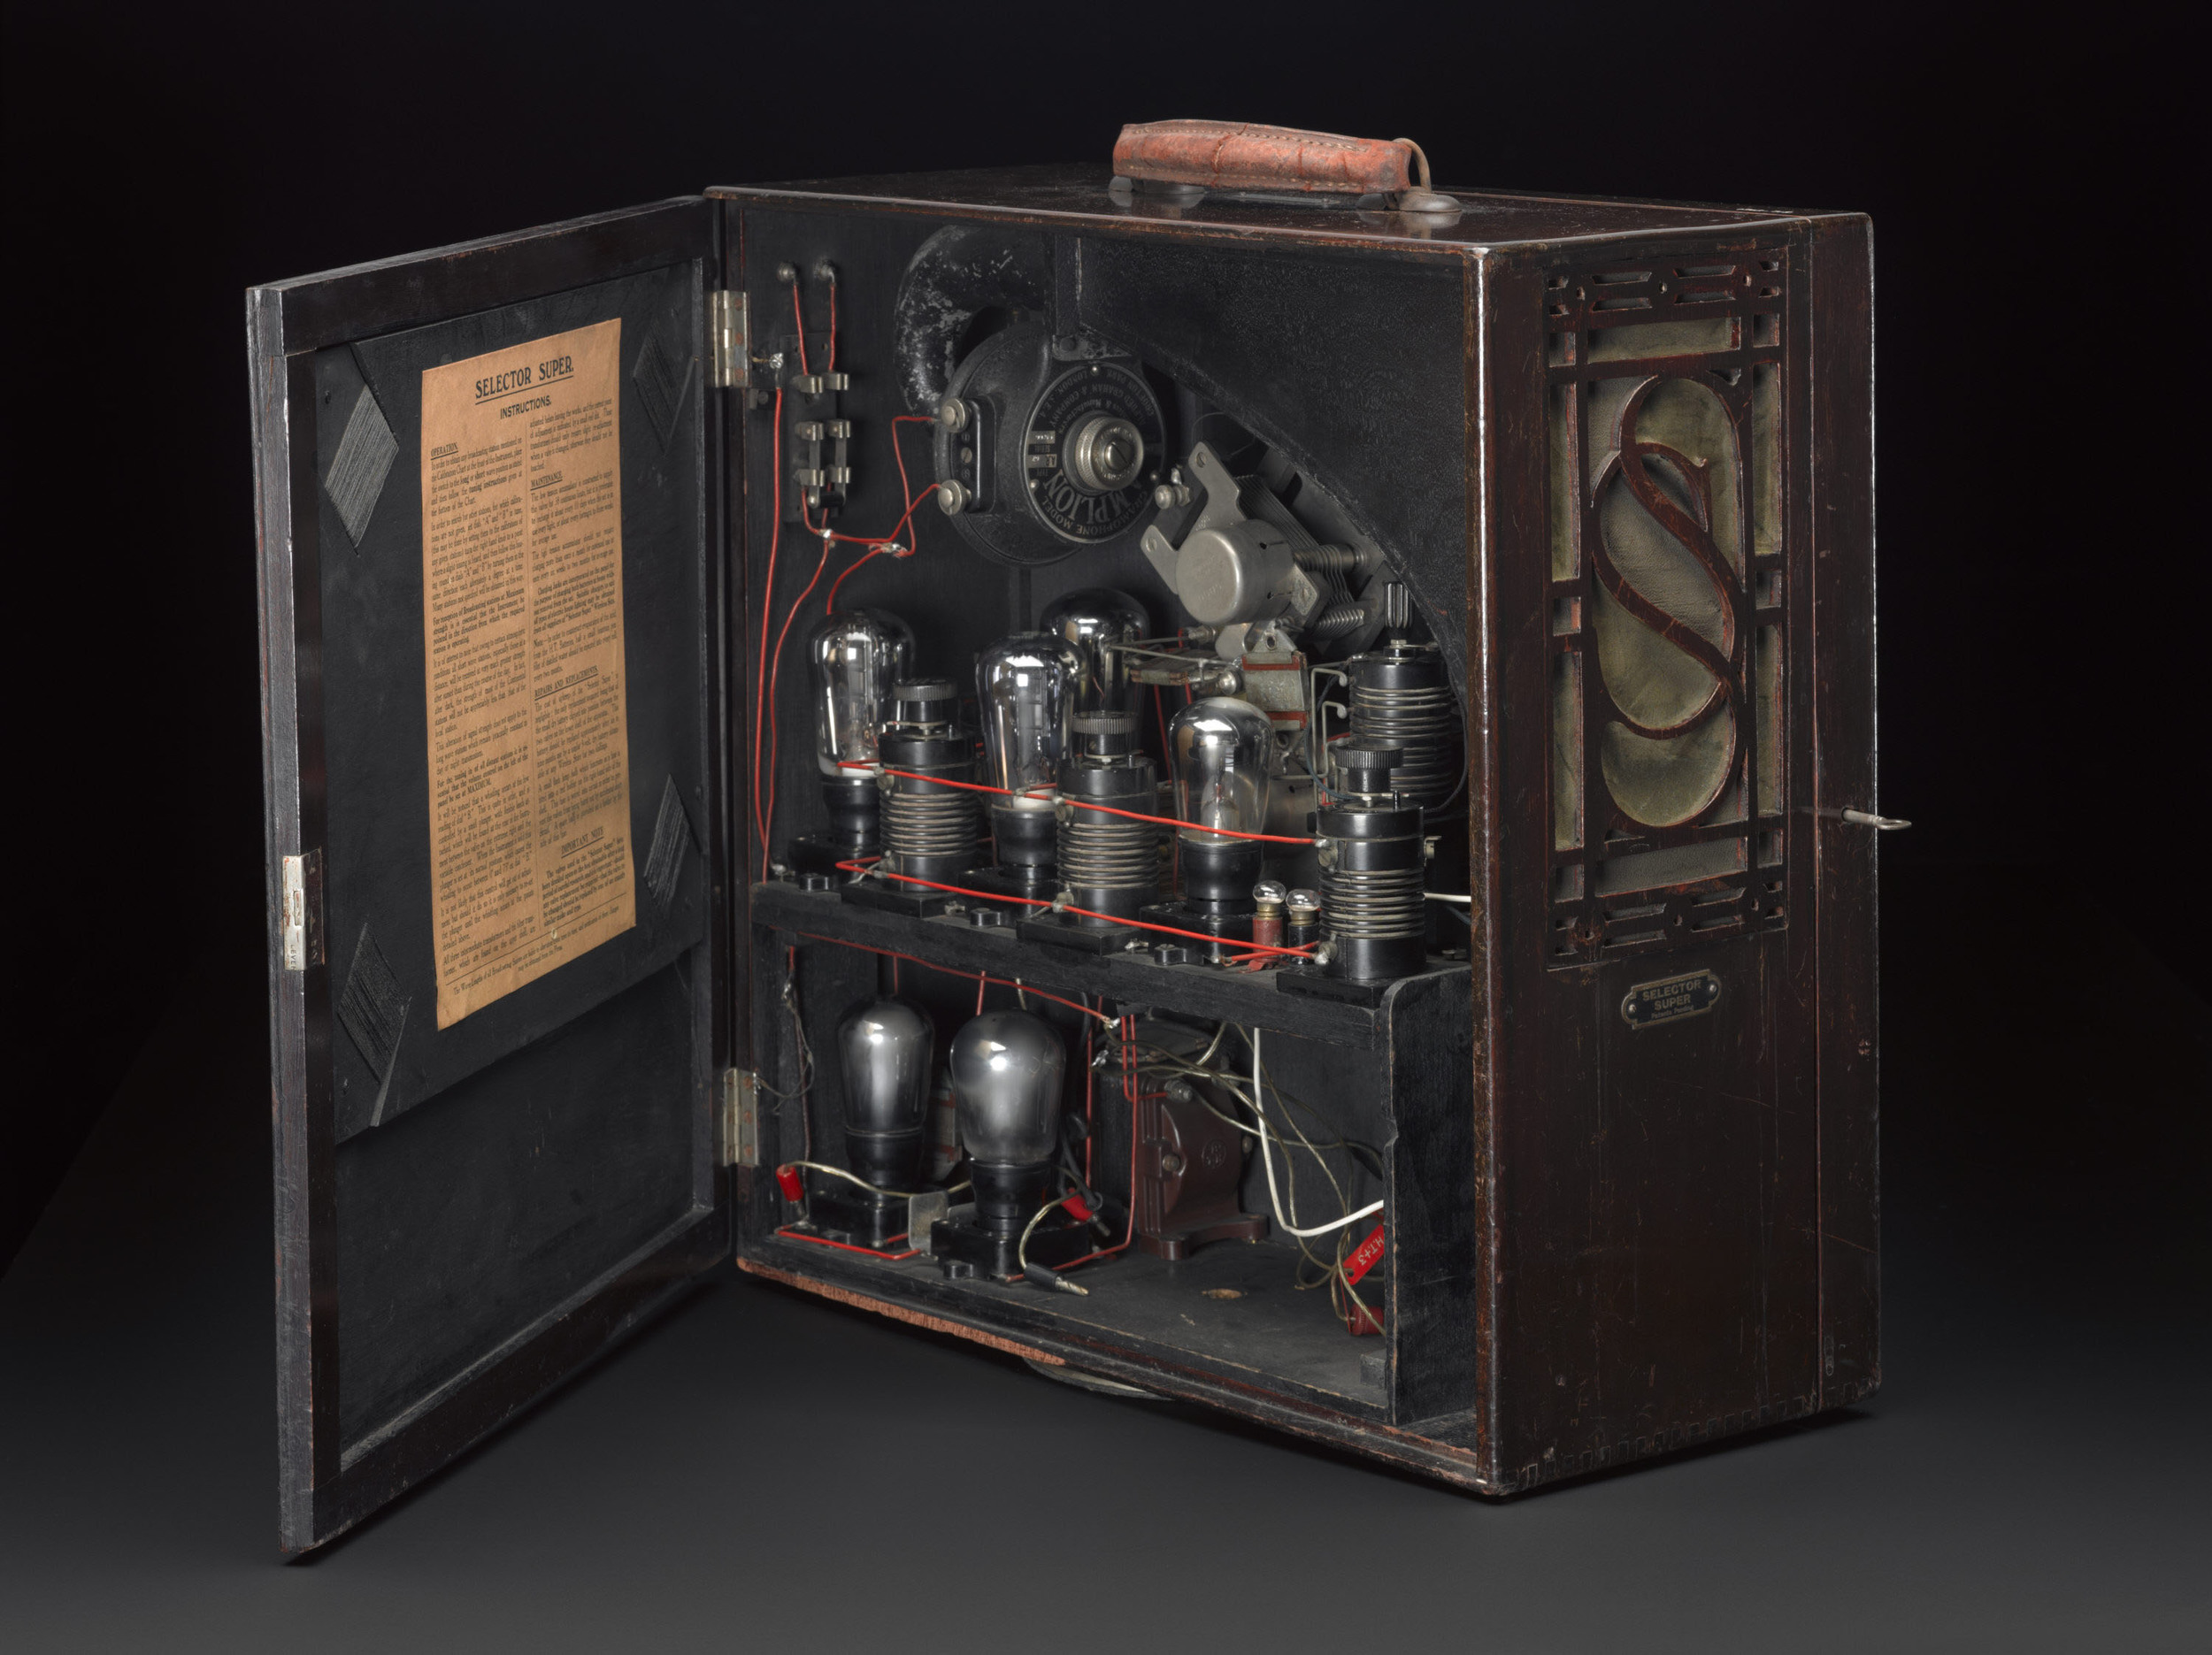 The portable super selector before conservation (Source: Science Museum / SSPL)